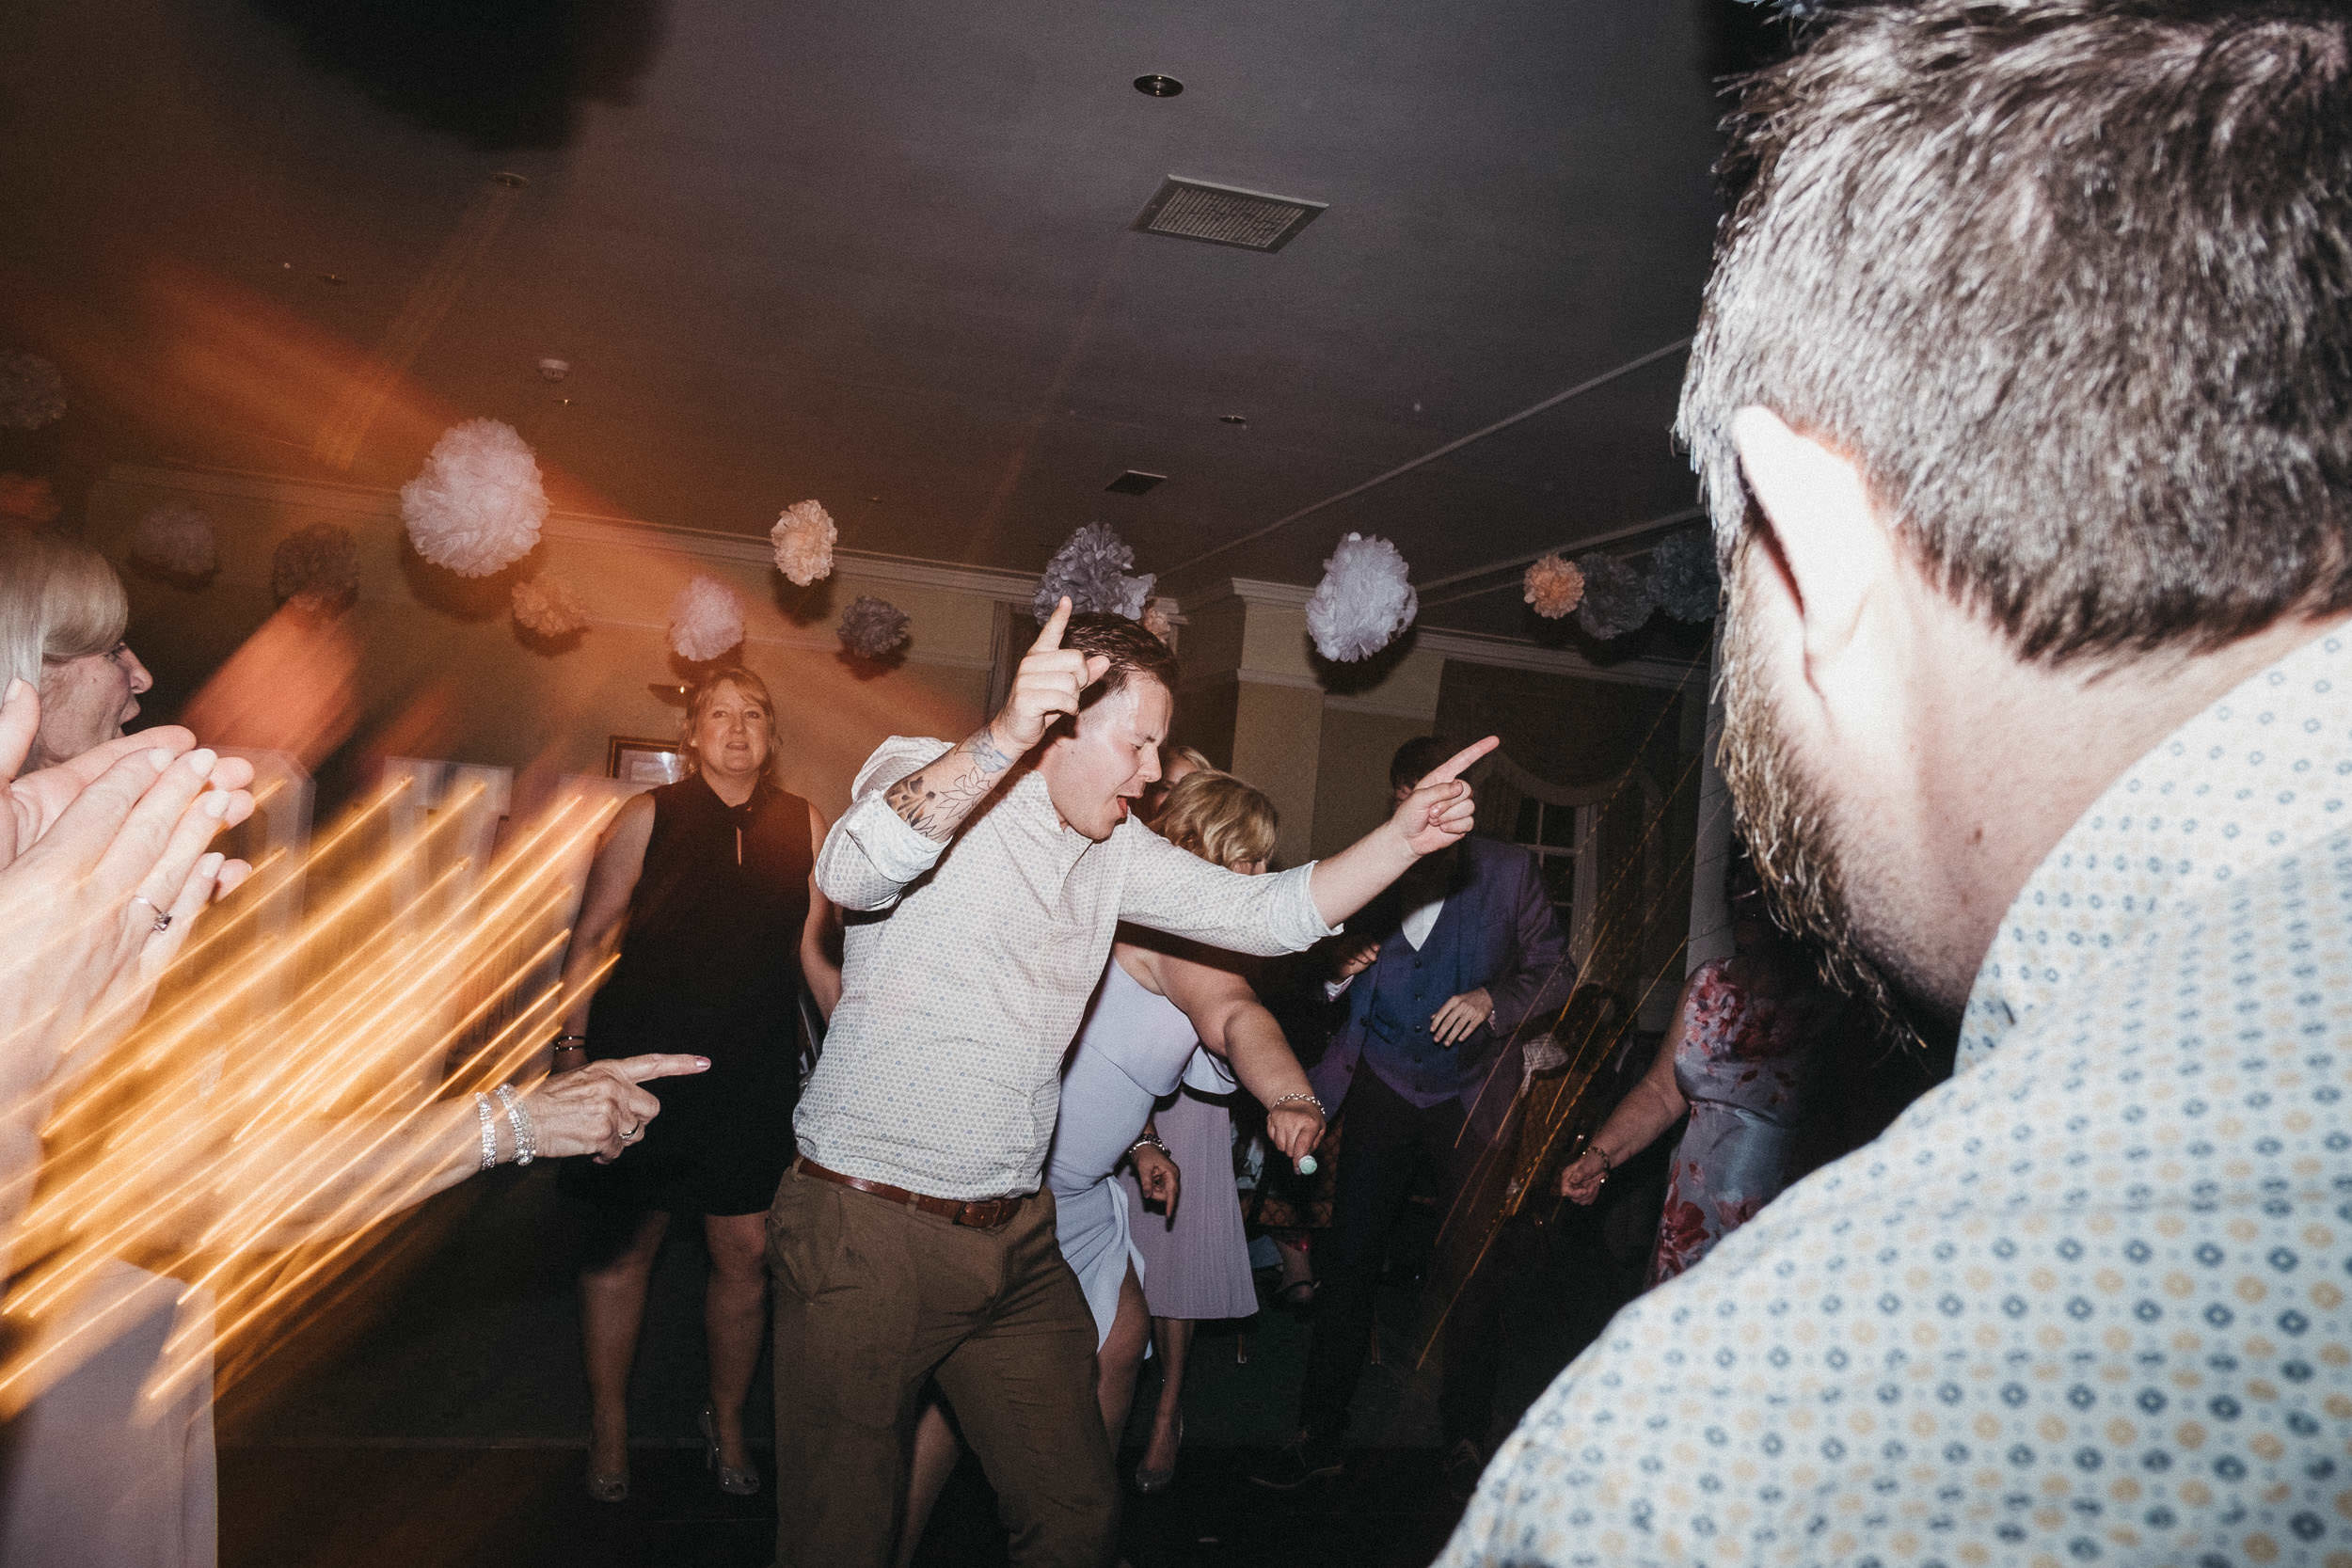 Wedding guest pointing while dancing